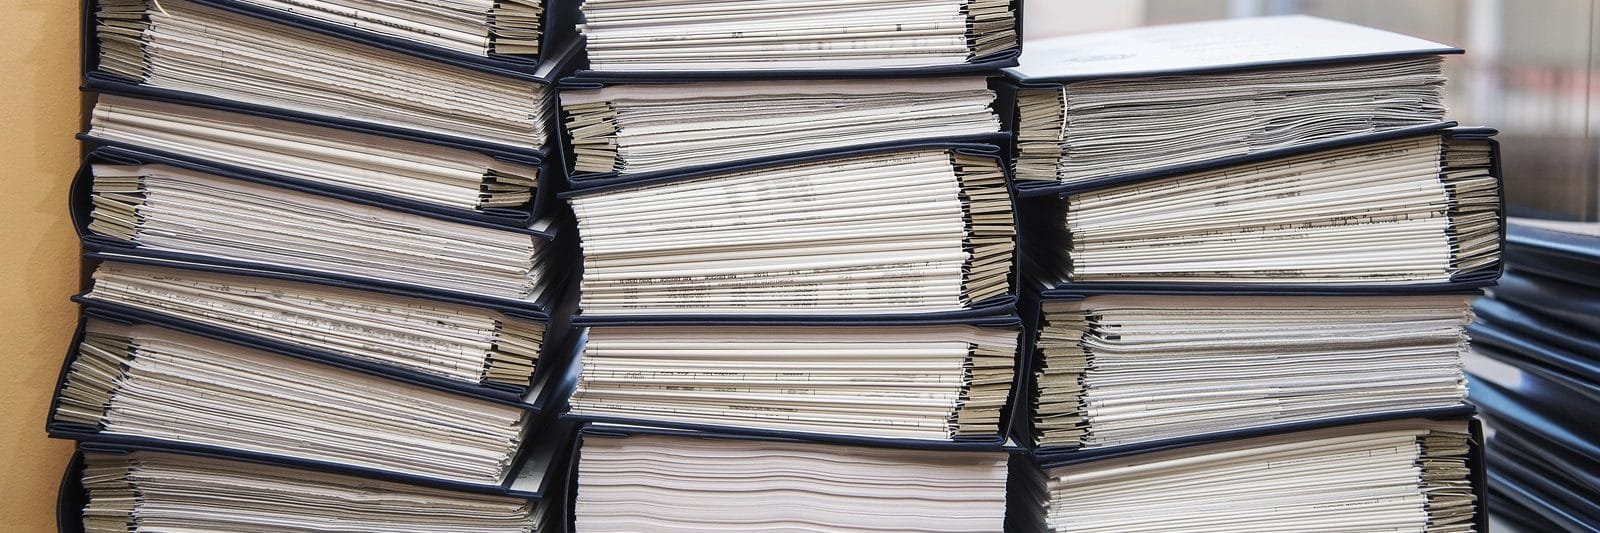 Stacks of Legal Documents